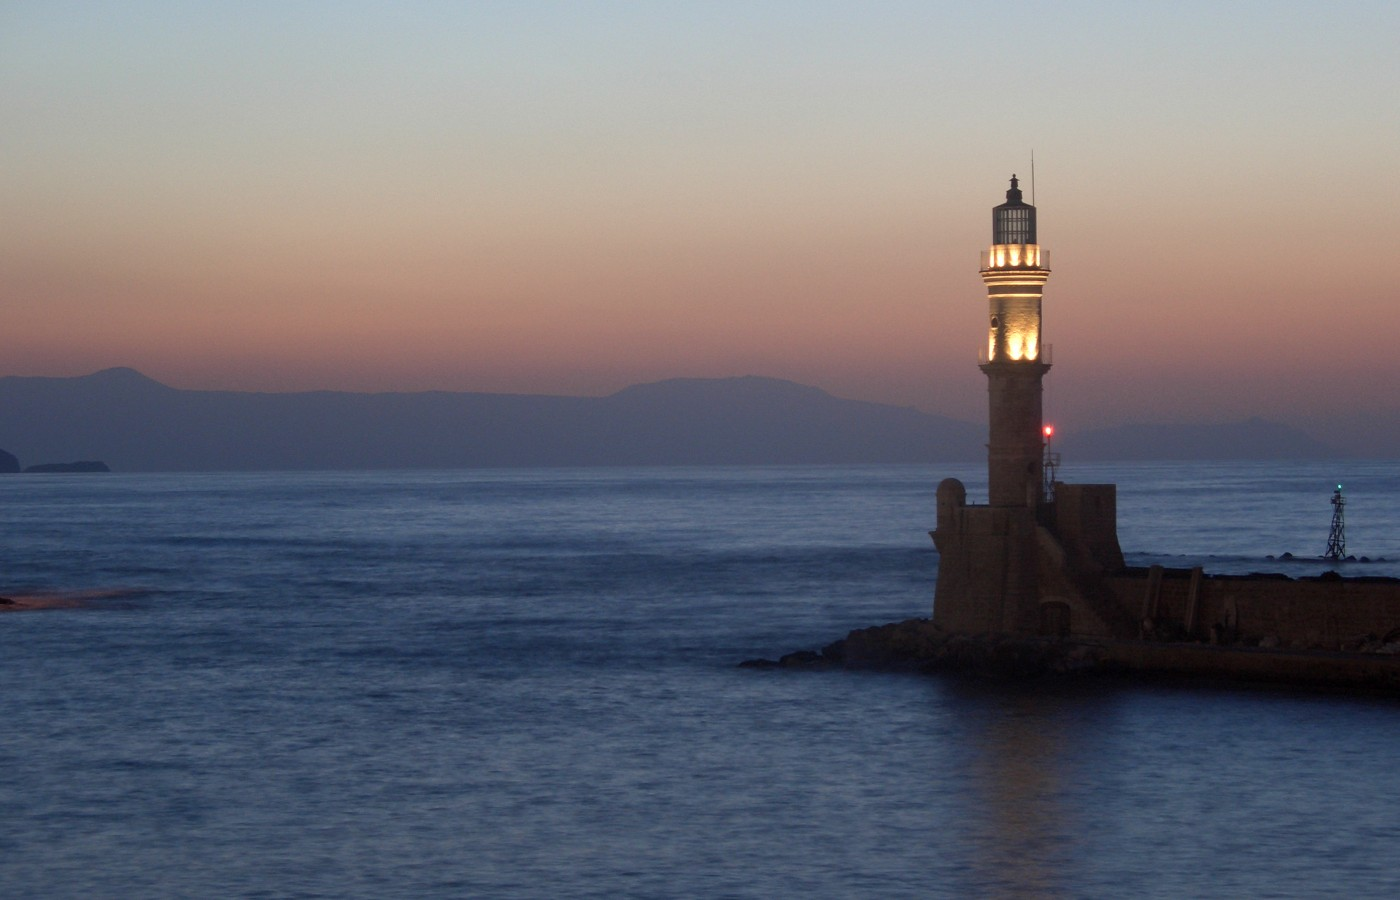 chania city near almirida - Villas-Almyrida - The best Almyrida beach view